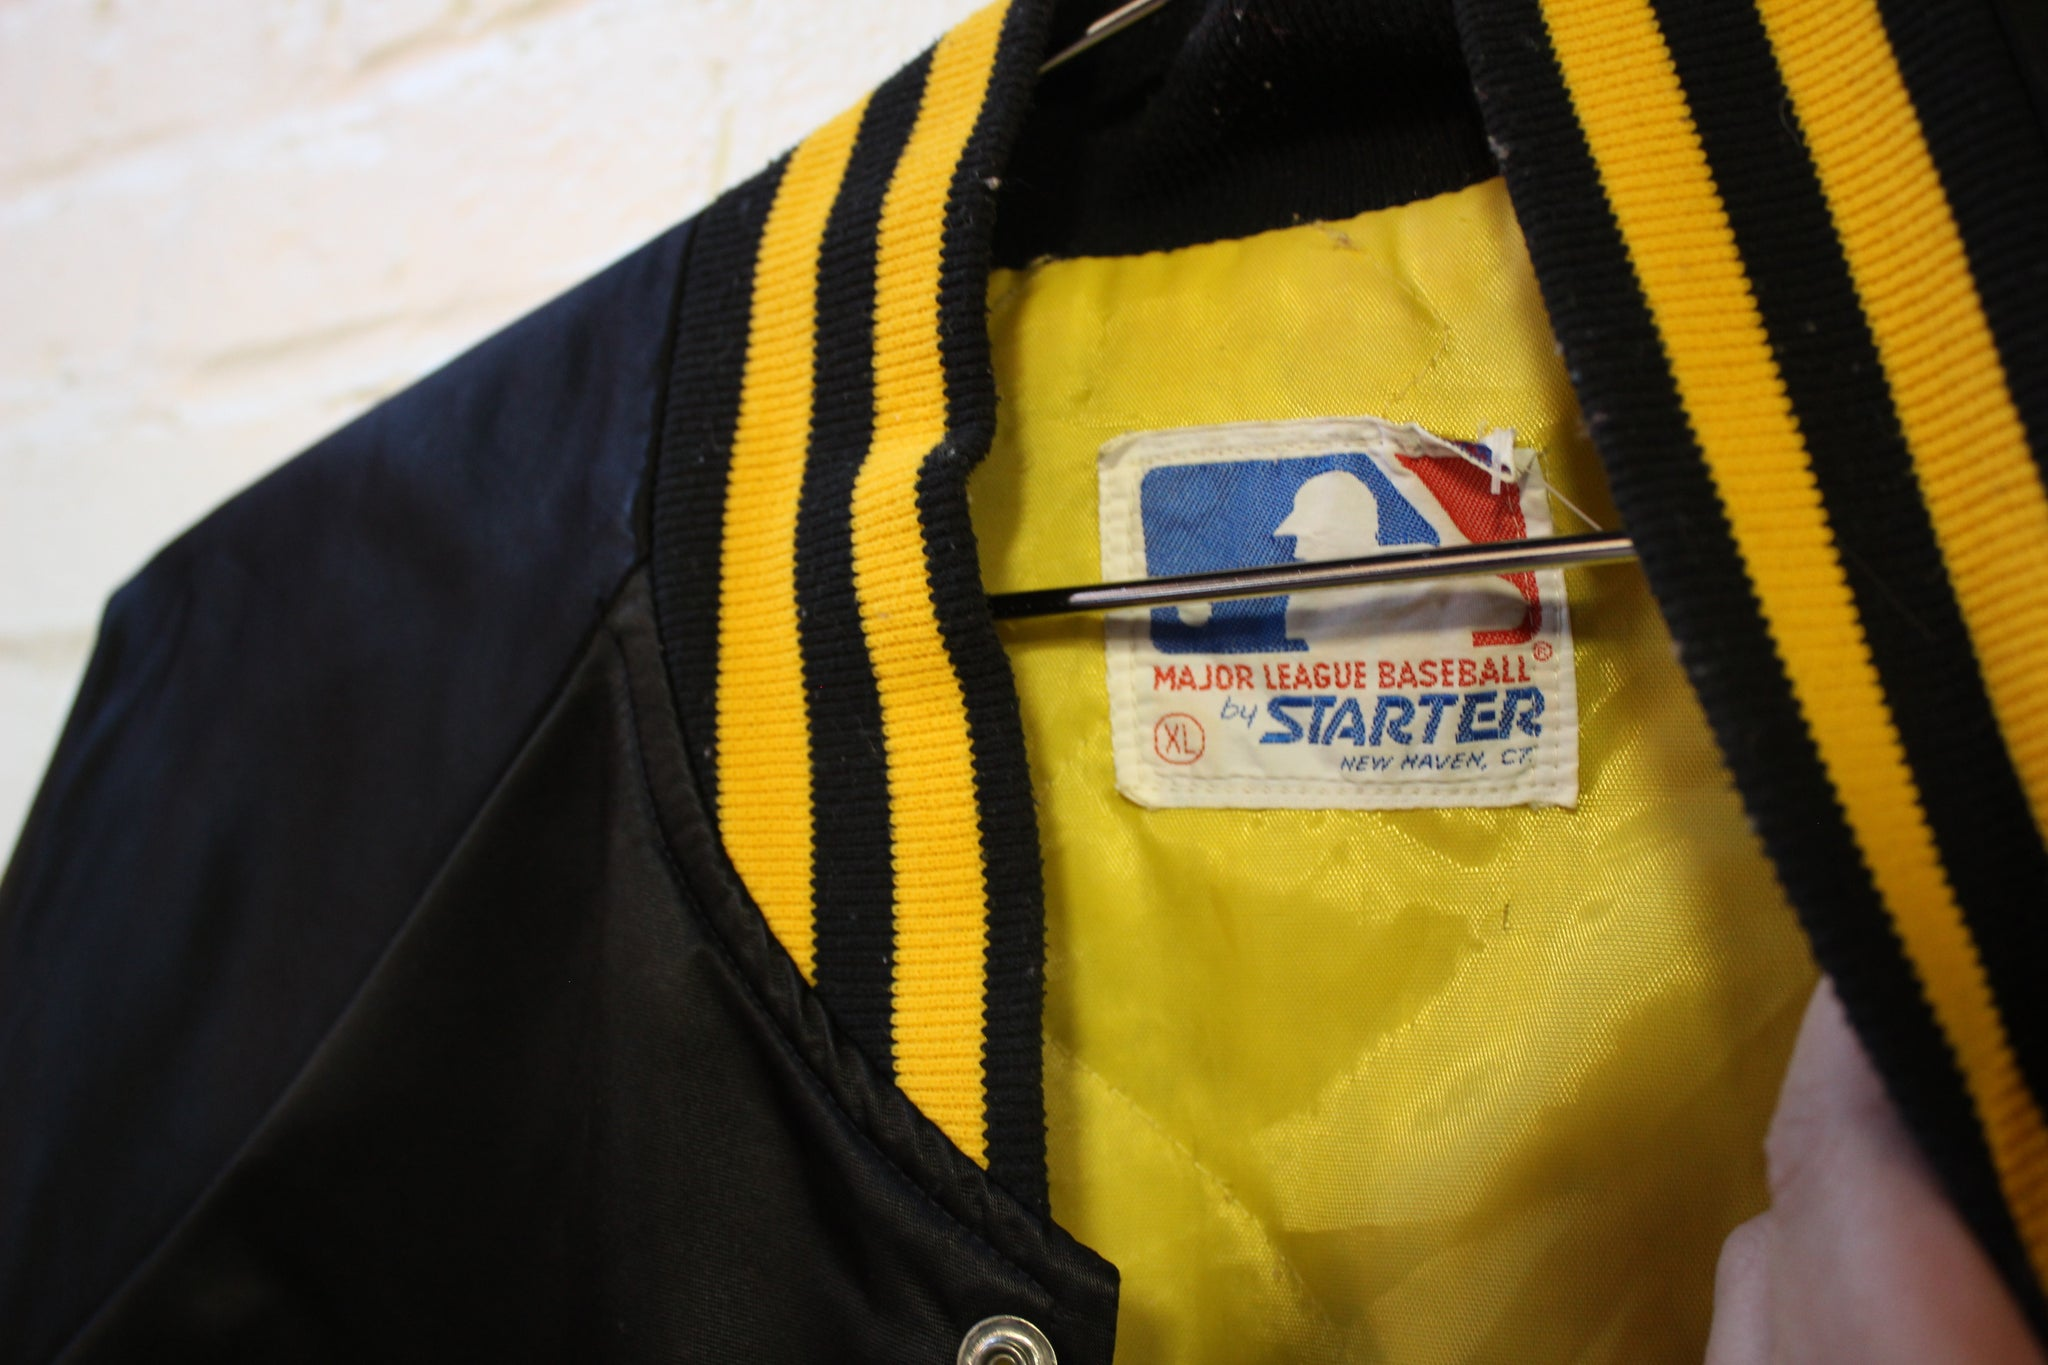 Steelers Starter Bomber Jacket